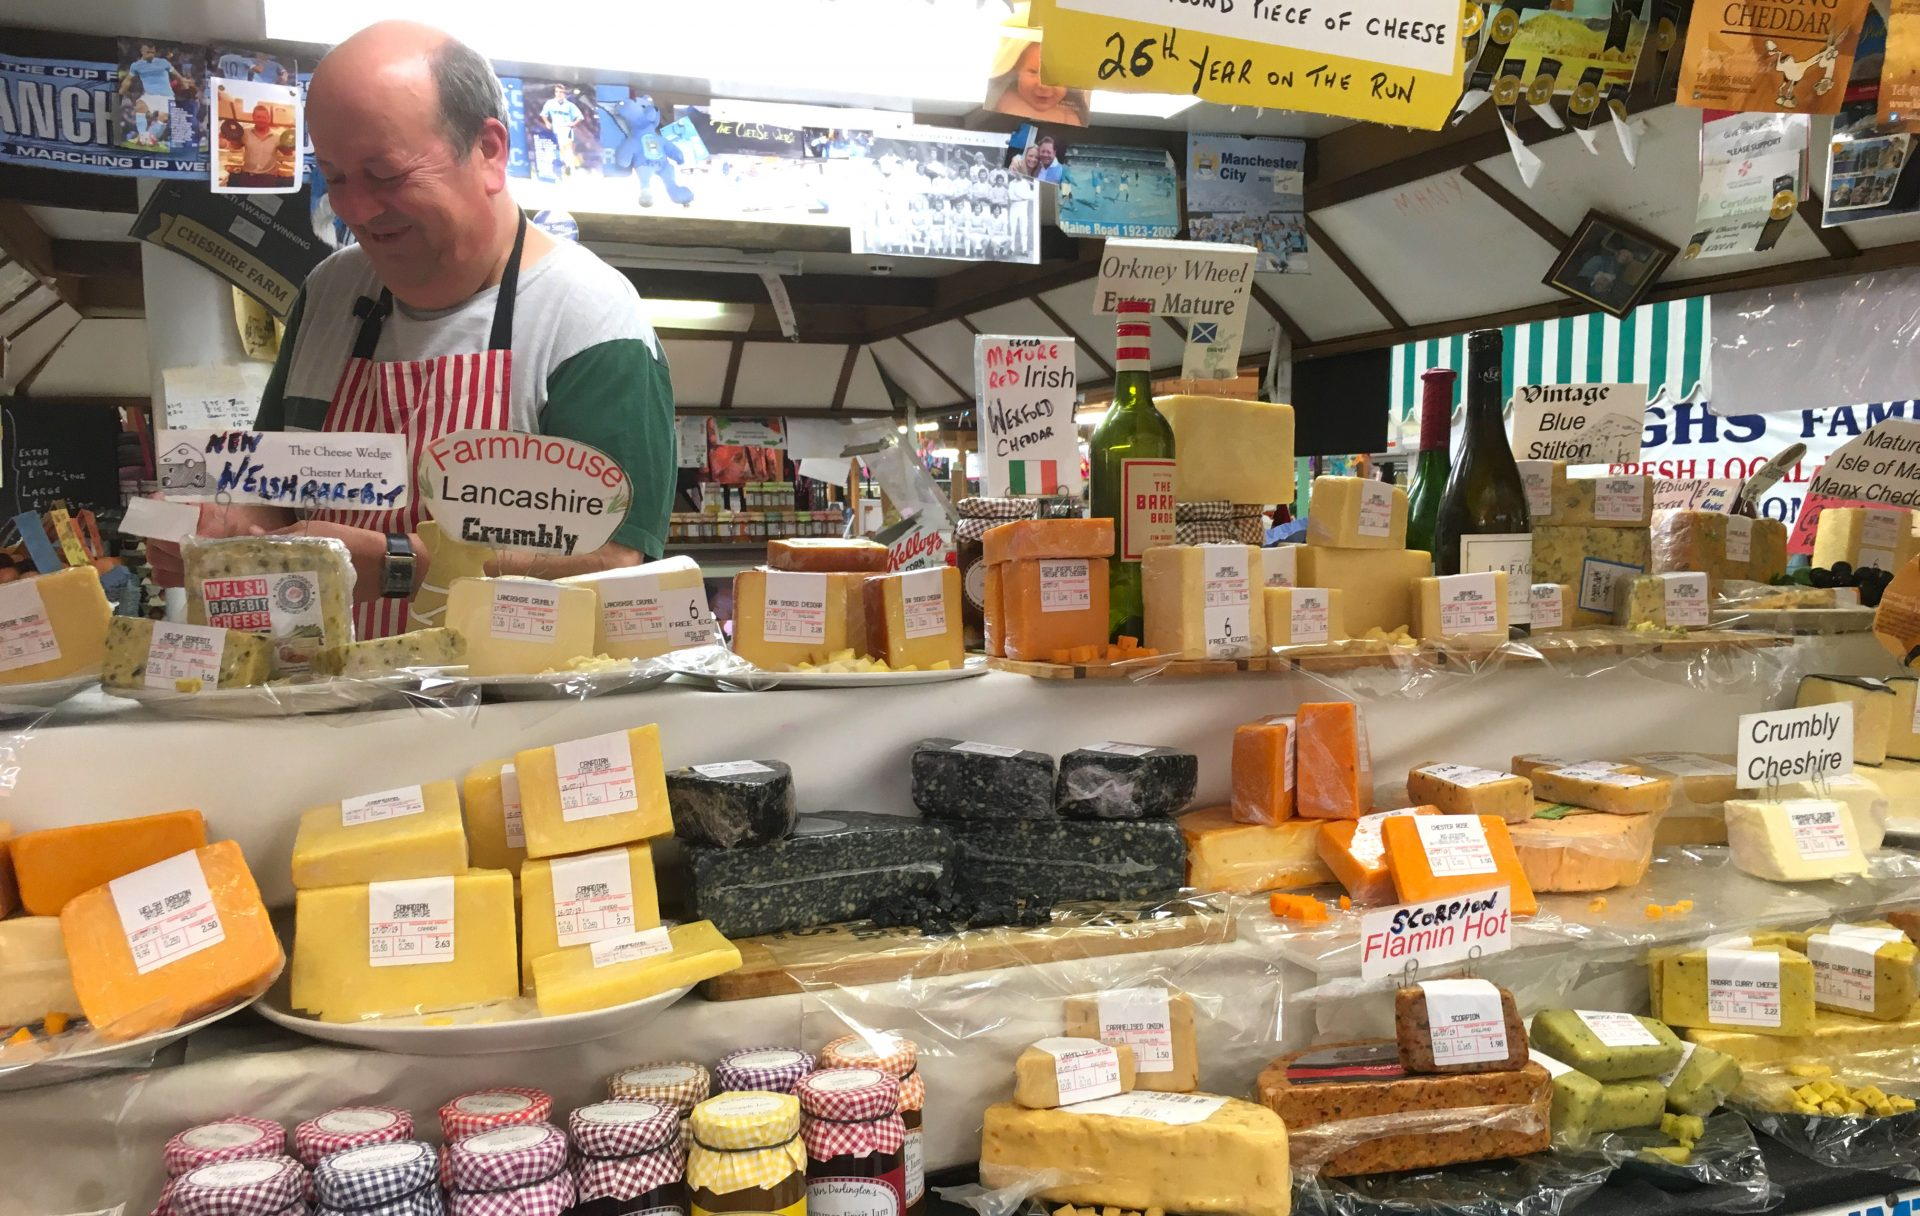 Taken on a visit to Chester Market in 2019. He certainly knew his cheese.